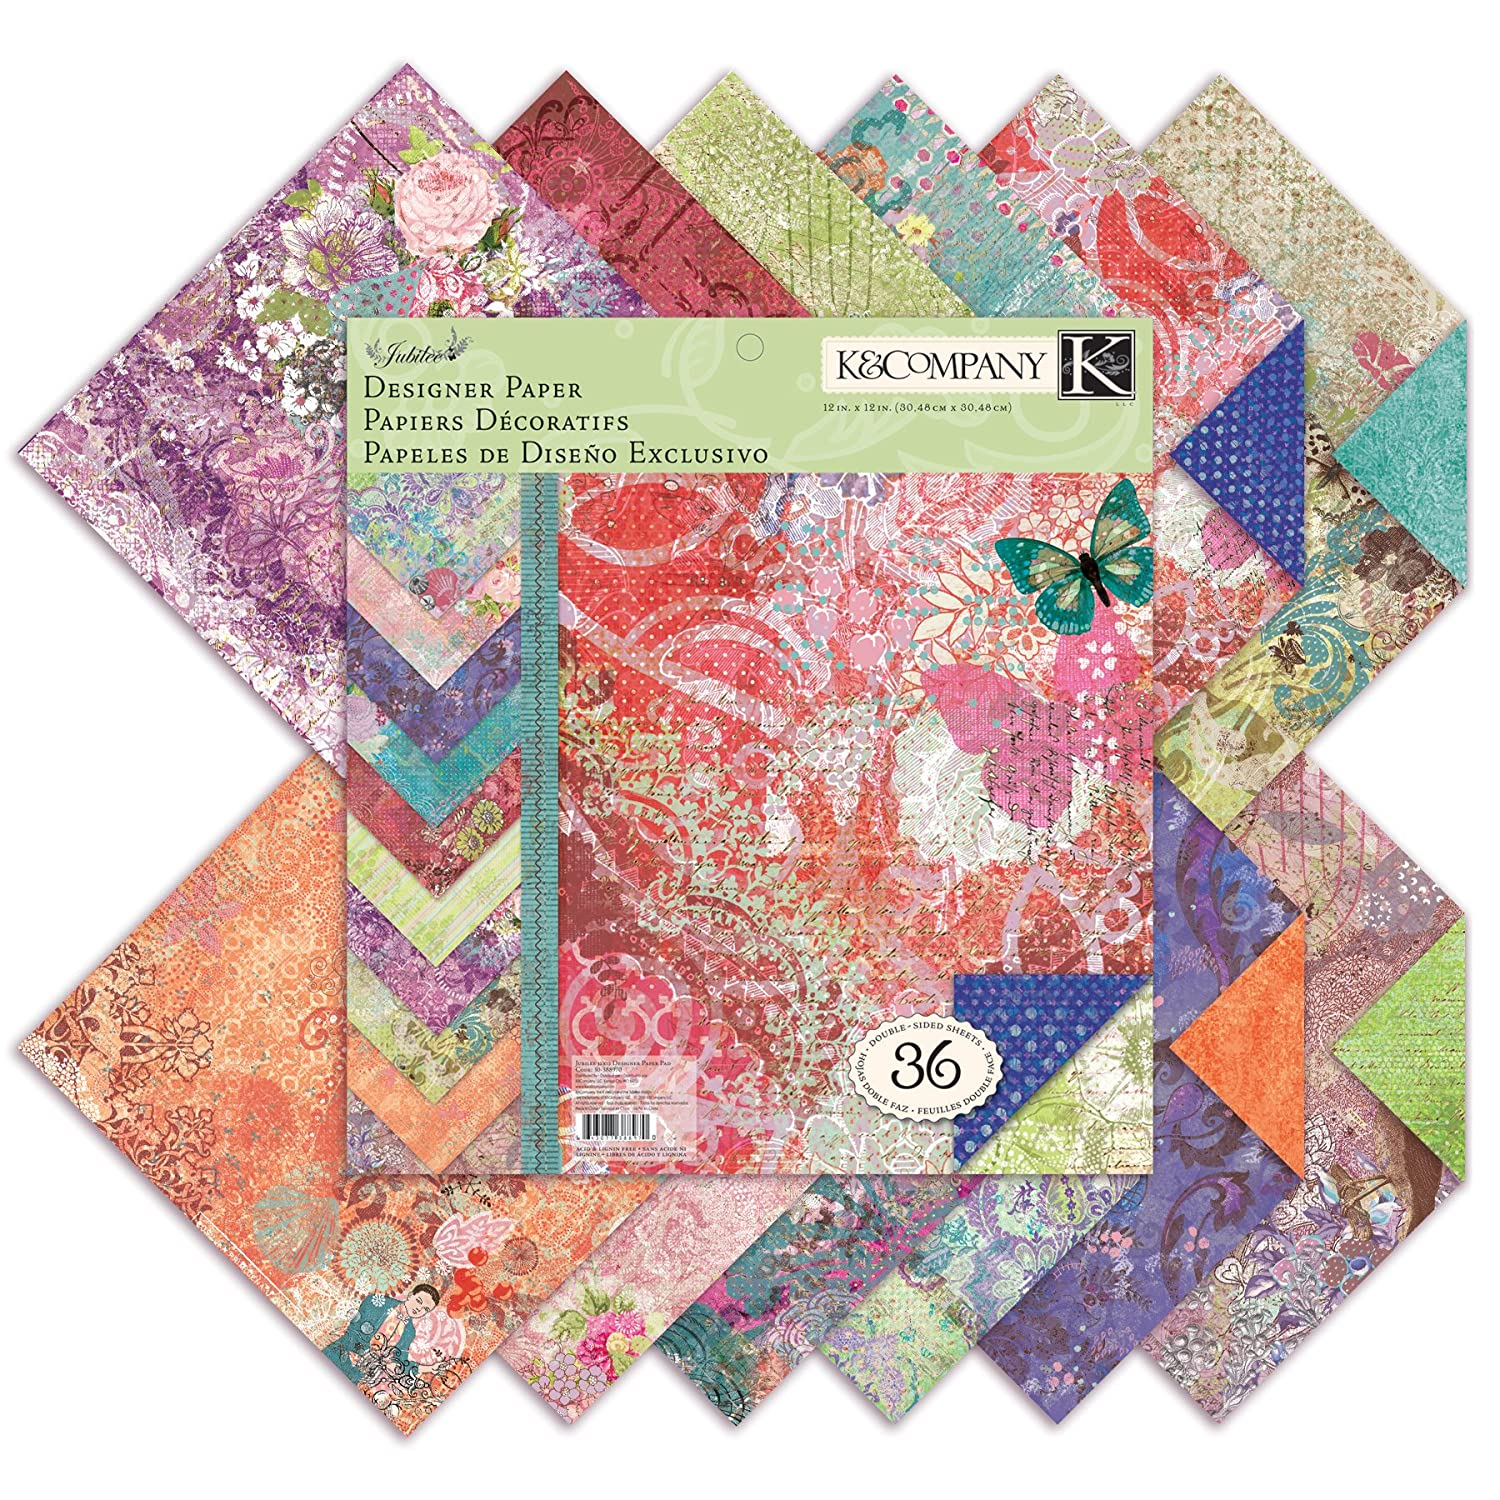 Decorated Paper Designs Designer Paper Pad